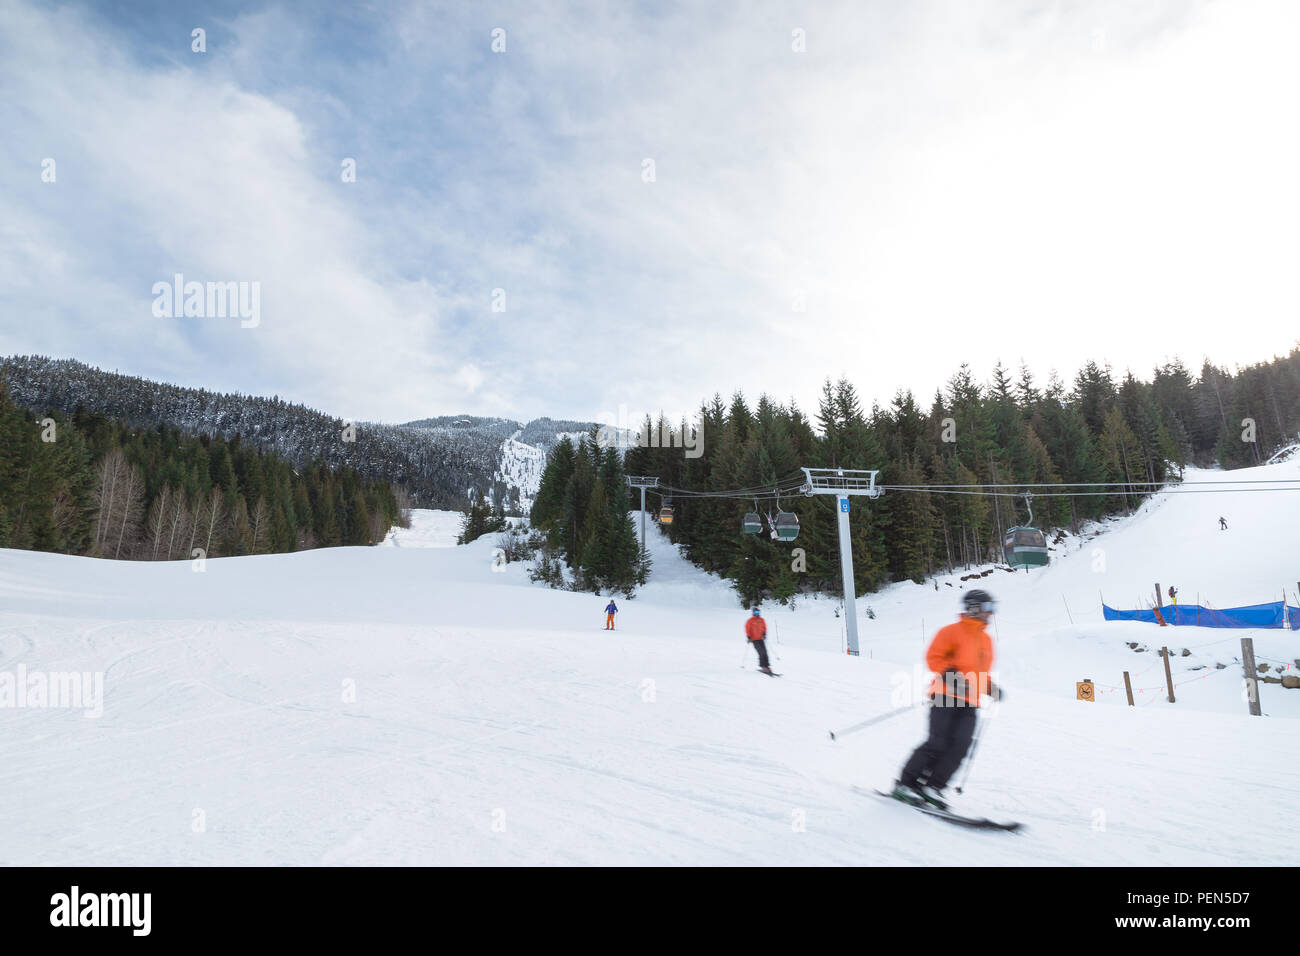 Blurred skiers going downhill on Whistler Mountain. Stock Photo